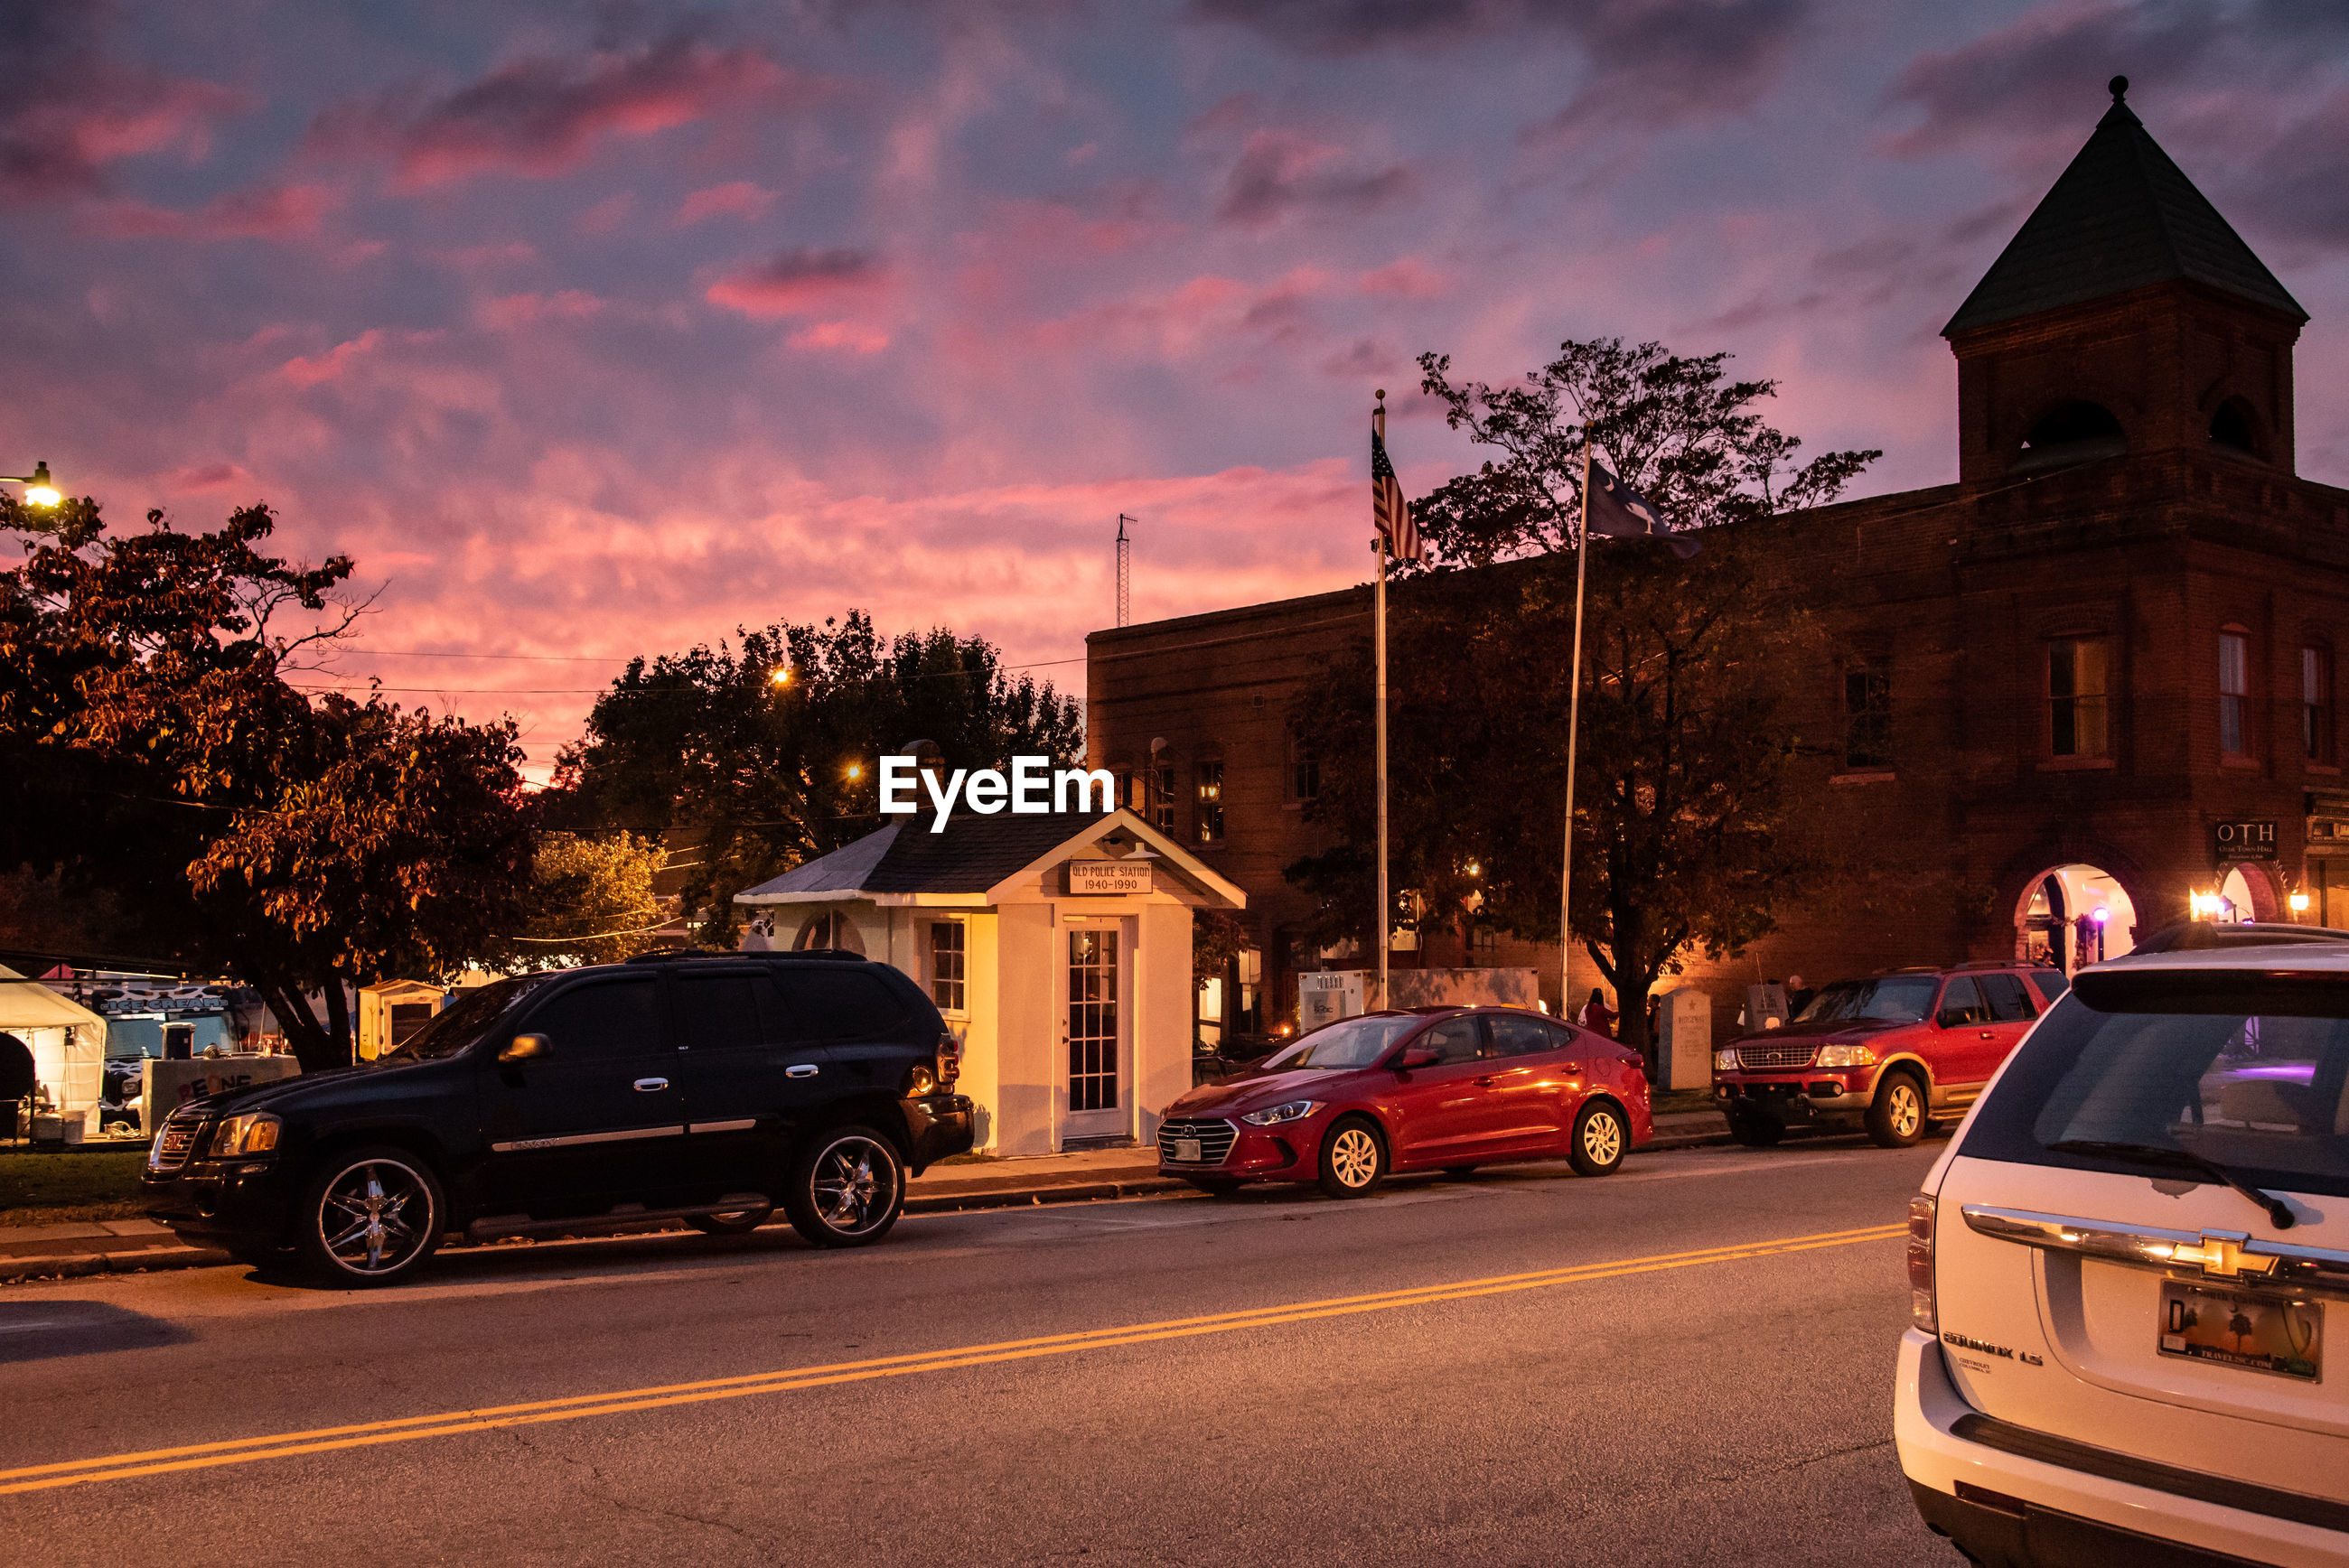 CARS ON ROAD BY ILLUMINATED BUILDINGS AGAINST SKY AT SUNSET